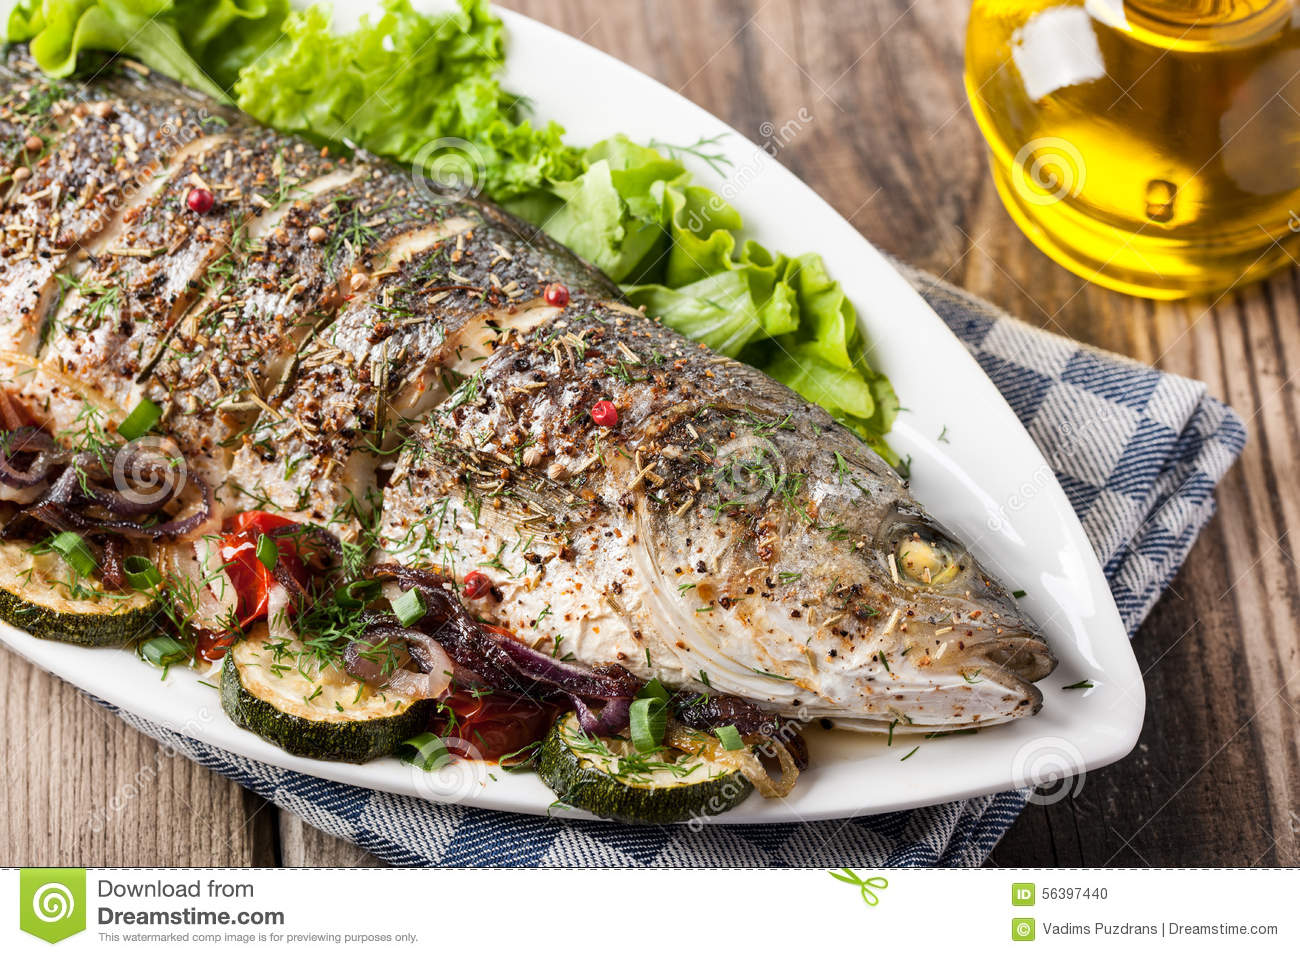 Baked fish with vegetables stock photo image 56397440 for What vegetables go with fish